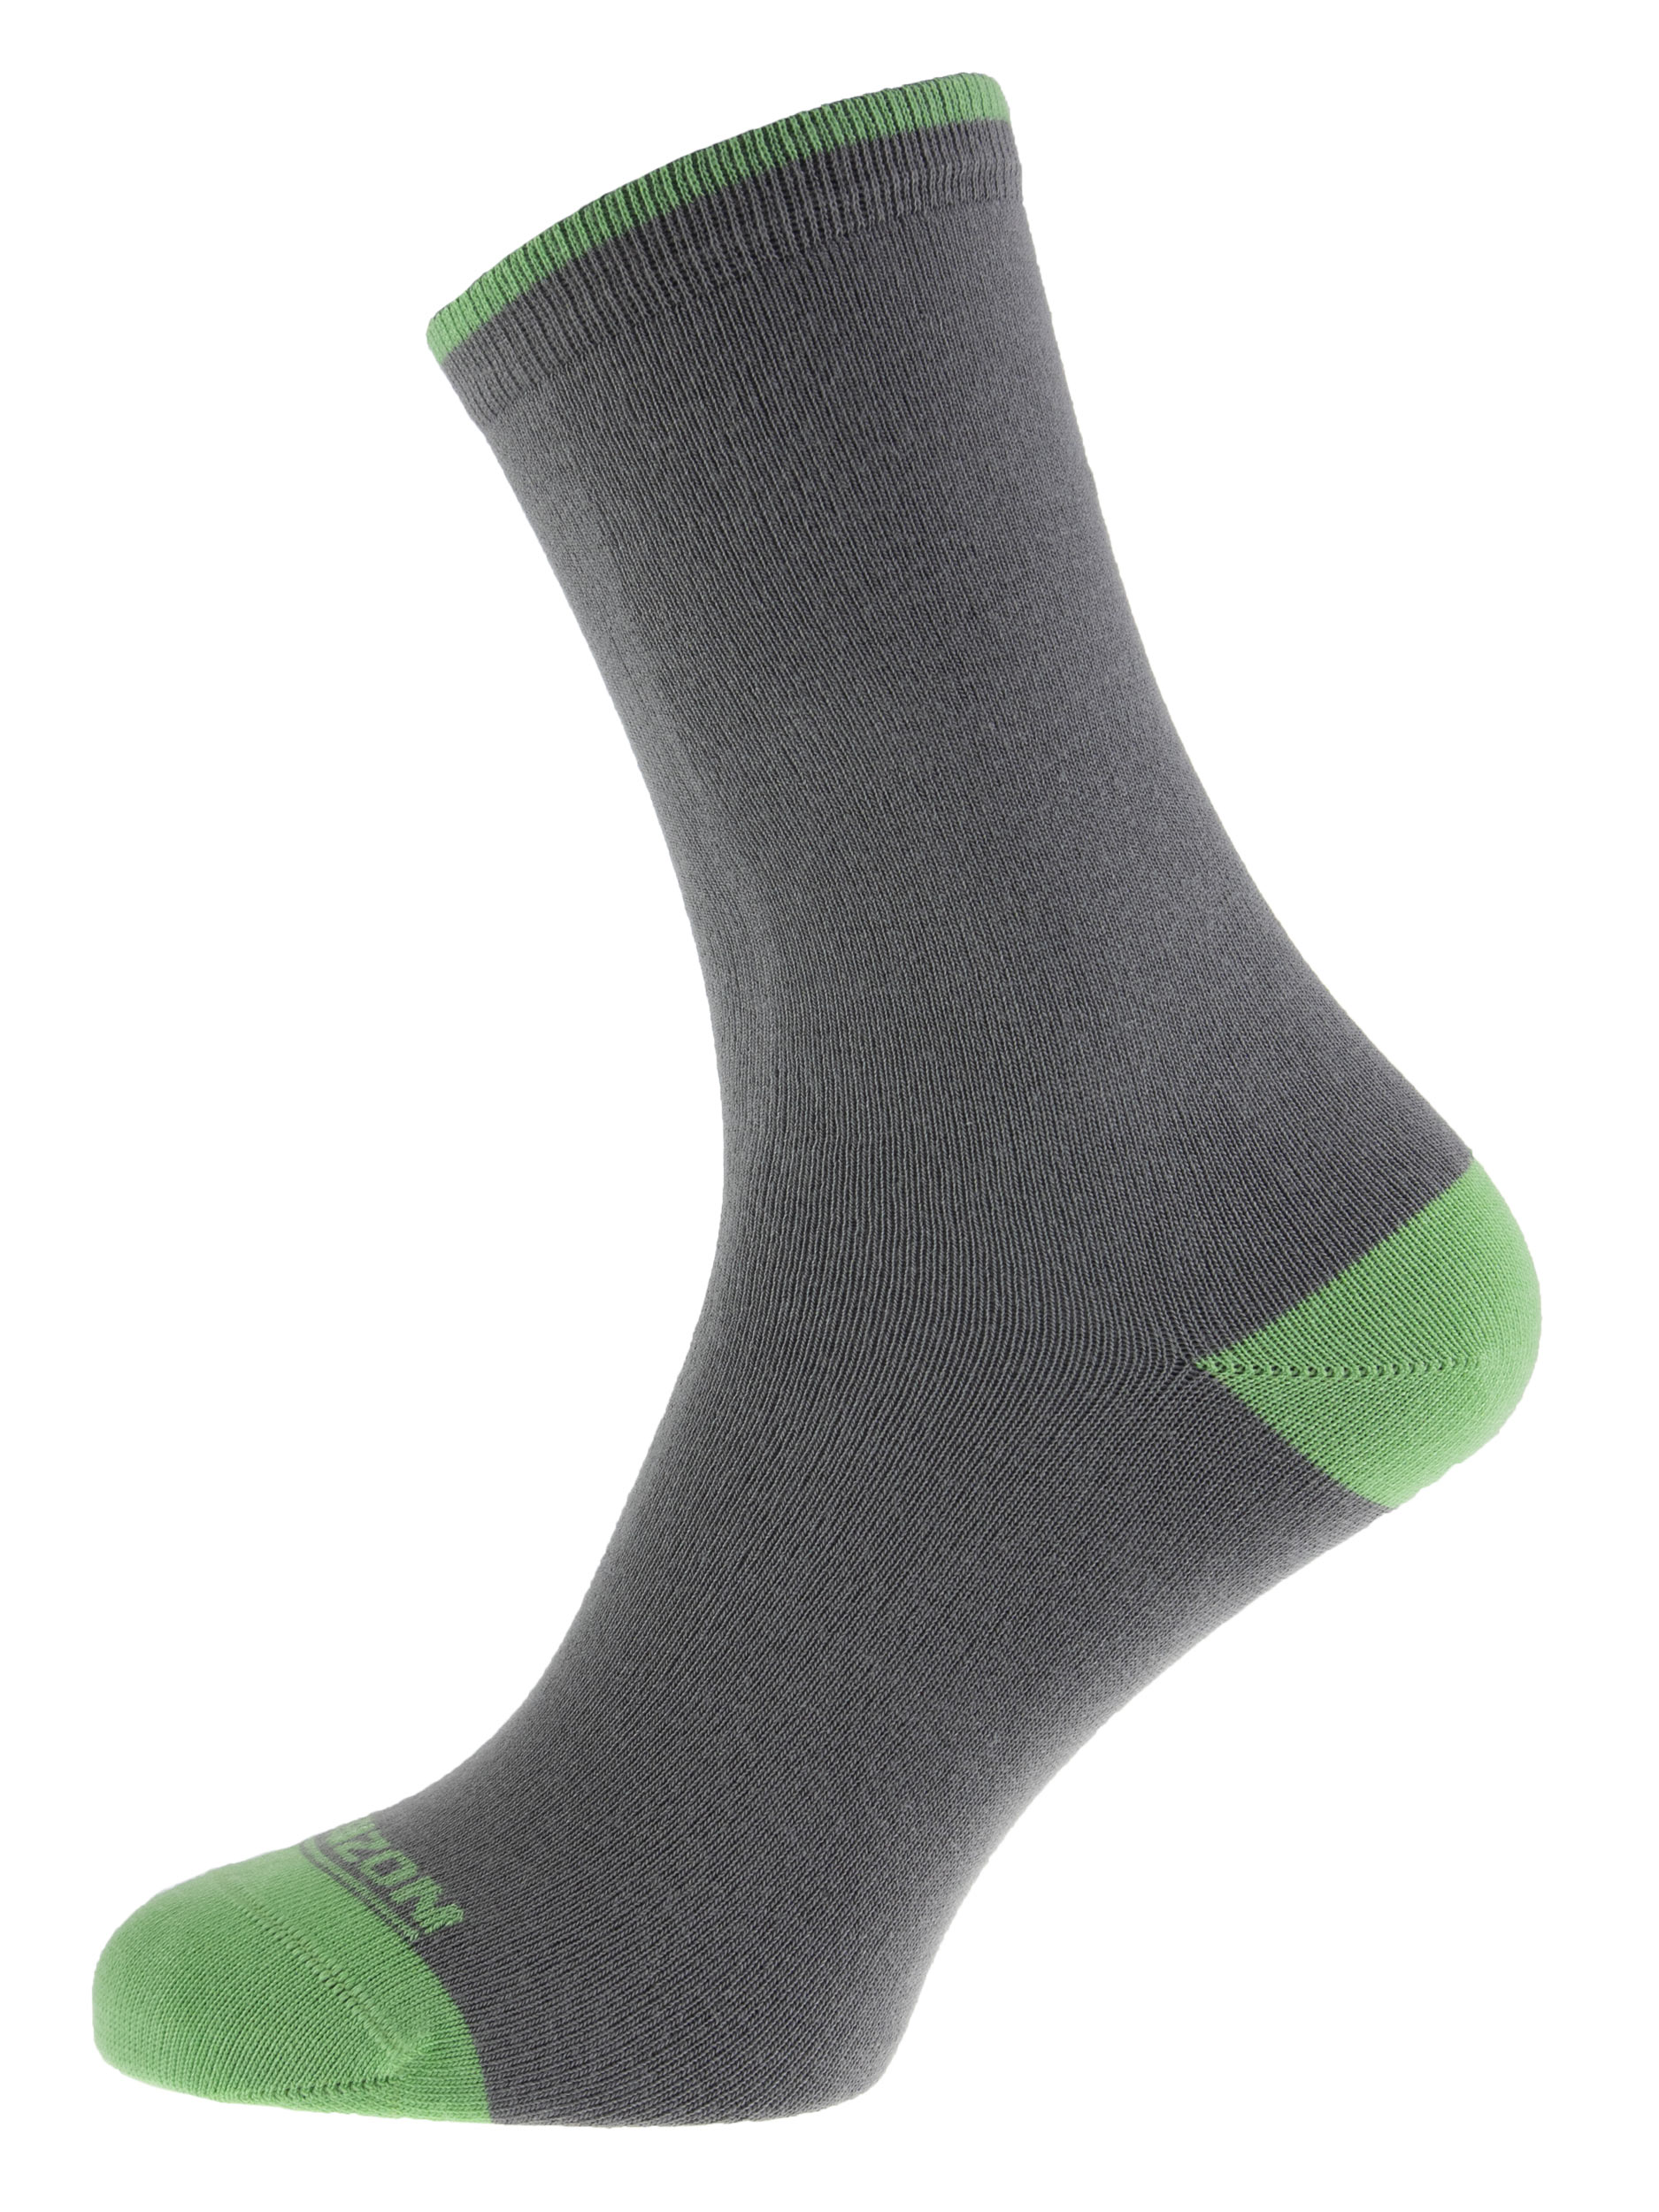 Lifestyle Women's Bamboo Plain Charcoal/Mint